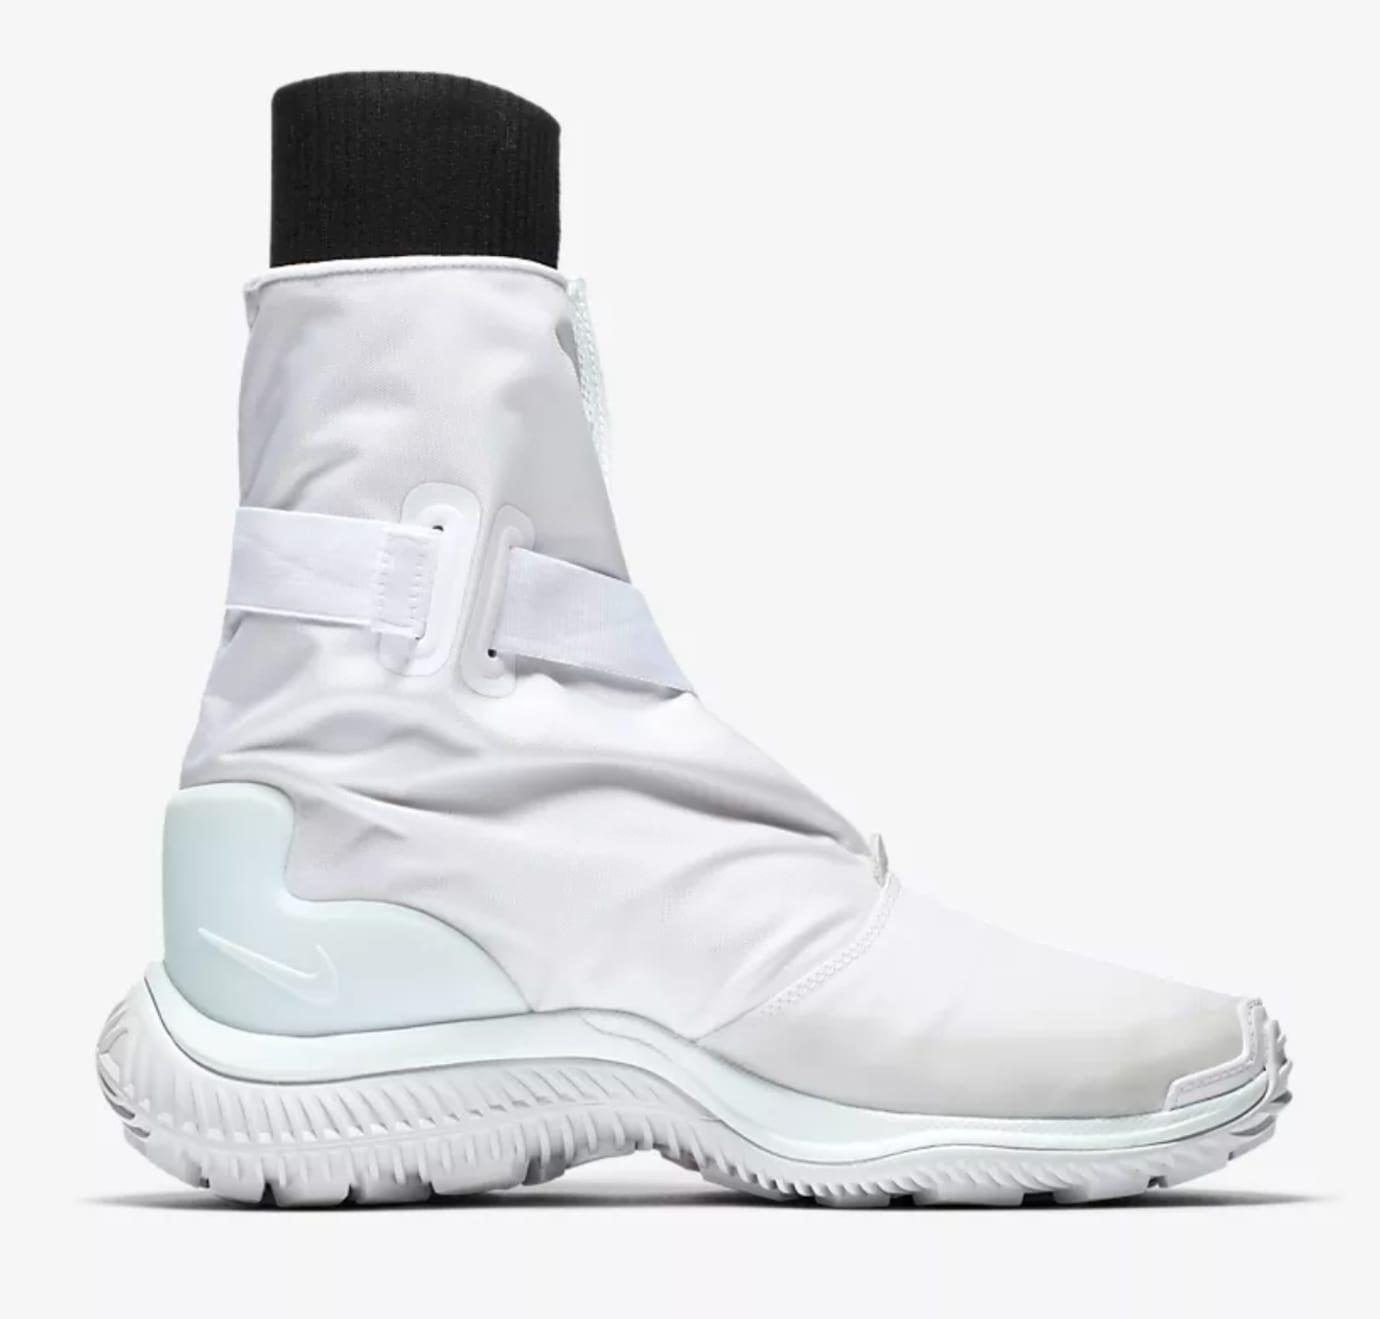 Nike Gaiter Women's Boot White/Black/Pure Platinum/Barely Green AA0528-100 (Medial)